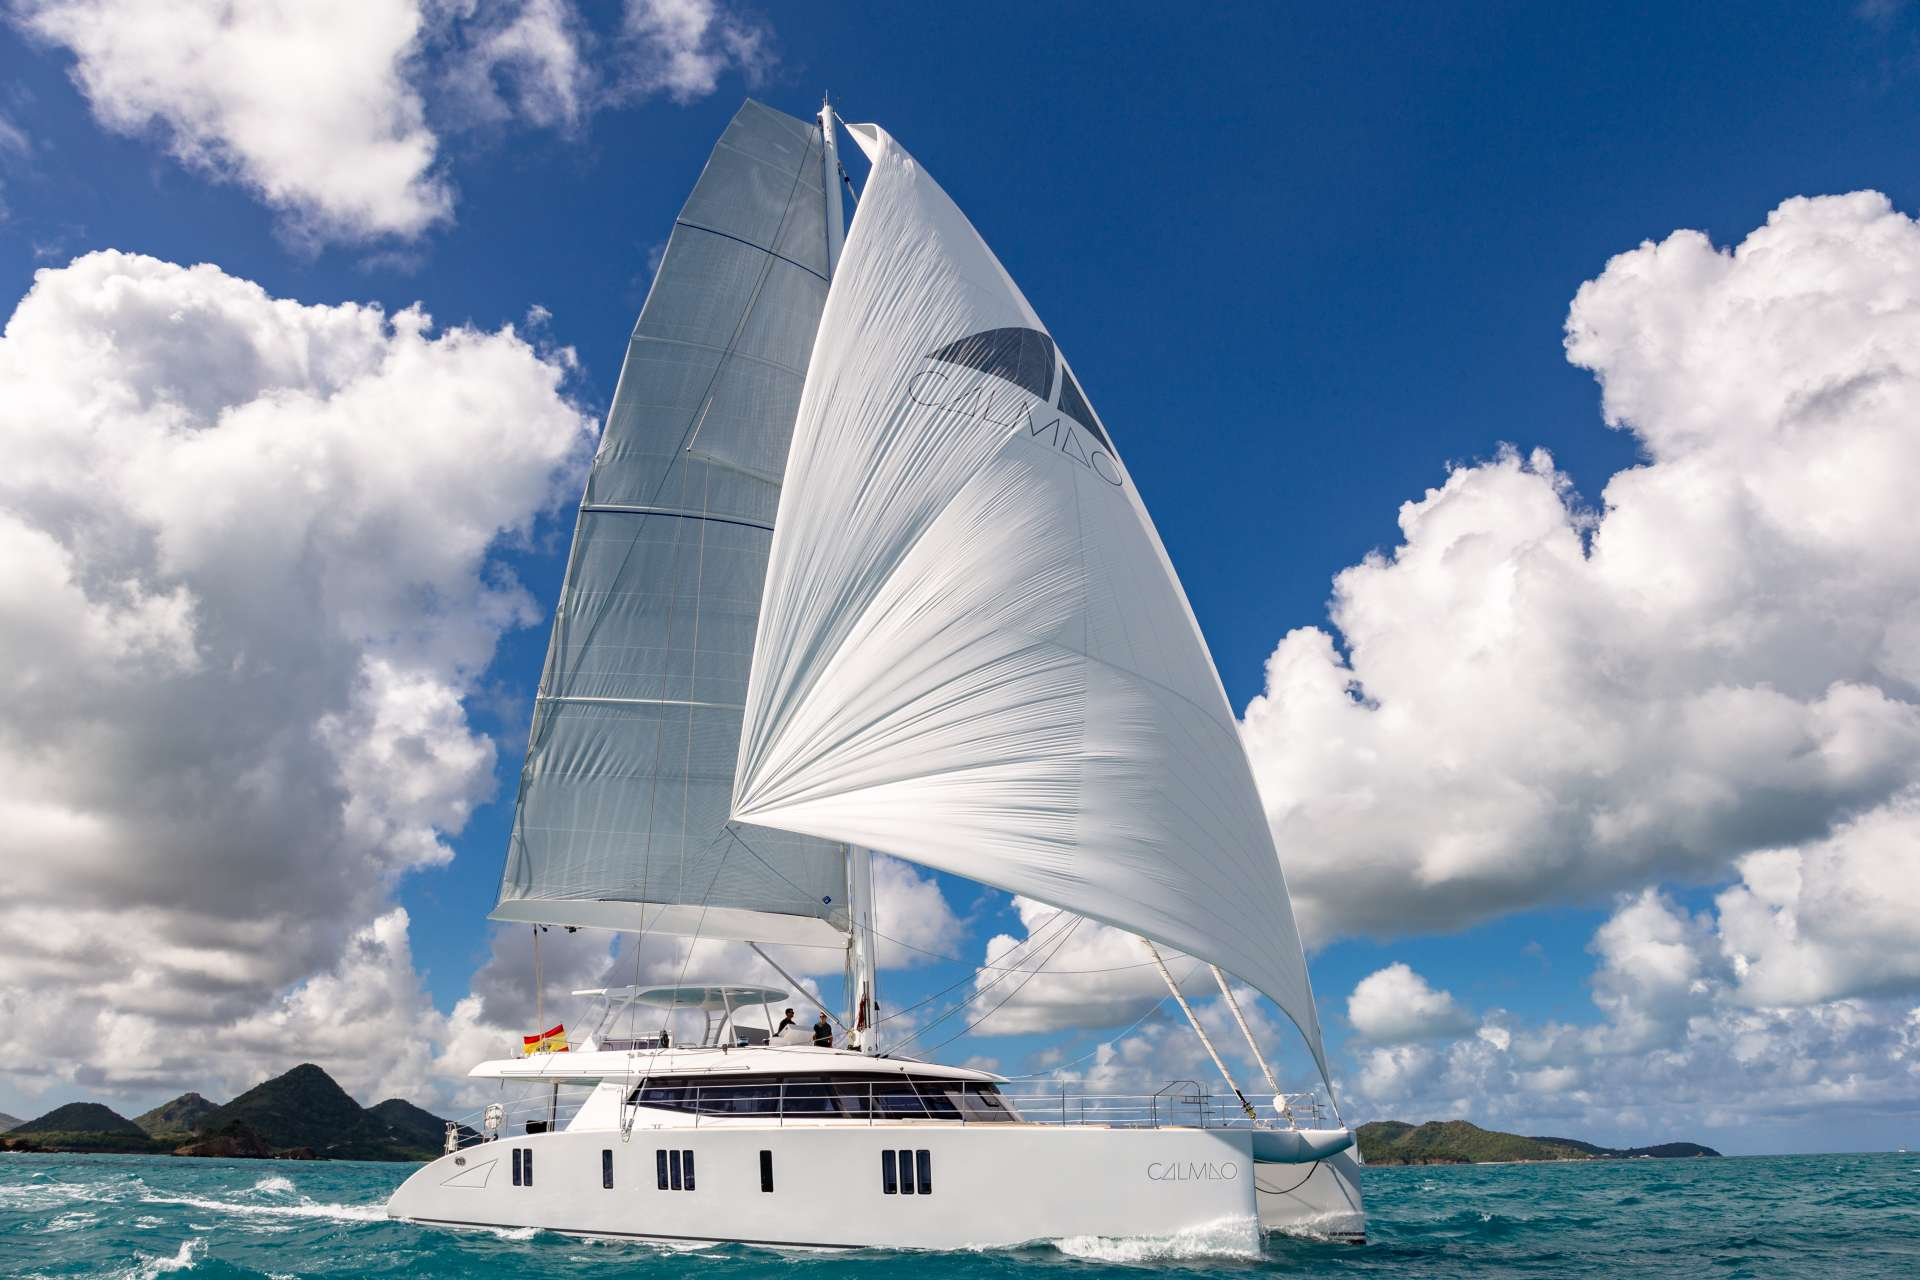 Cat Yacht 'Cat', 9 PAX, 3 Crew, 74.00 Ft, 22.00 Meters, Built 2017, Sunreef Yachts, Refit Year